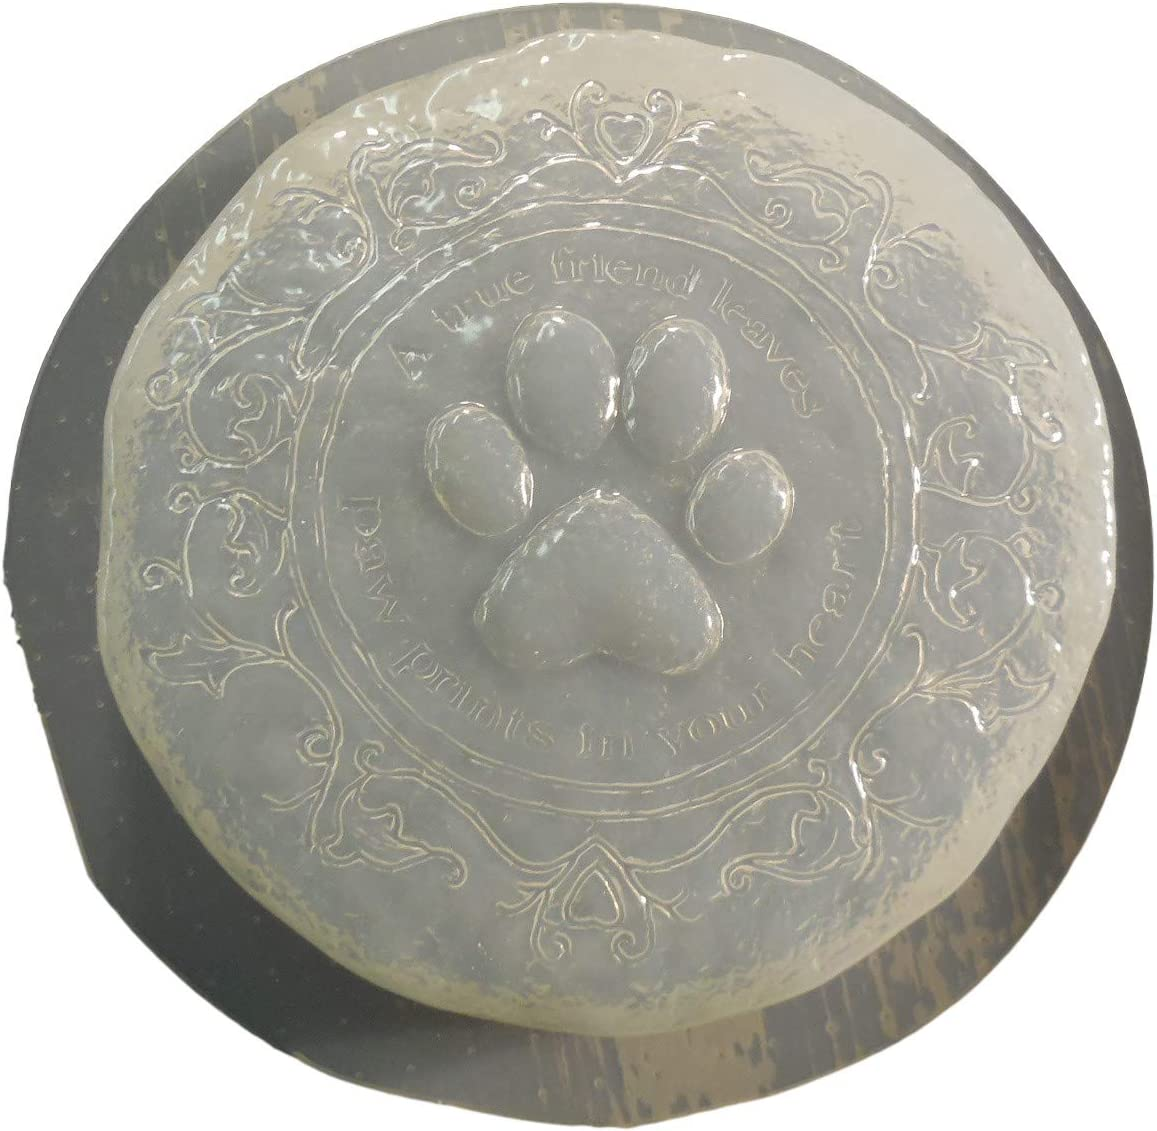 Small Dog Cat Paw Print Memorial Stepping Stone Concrete or Plaster Mold 7248